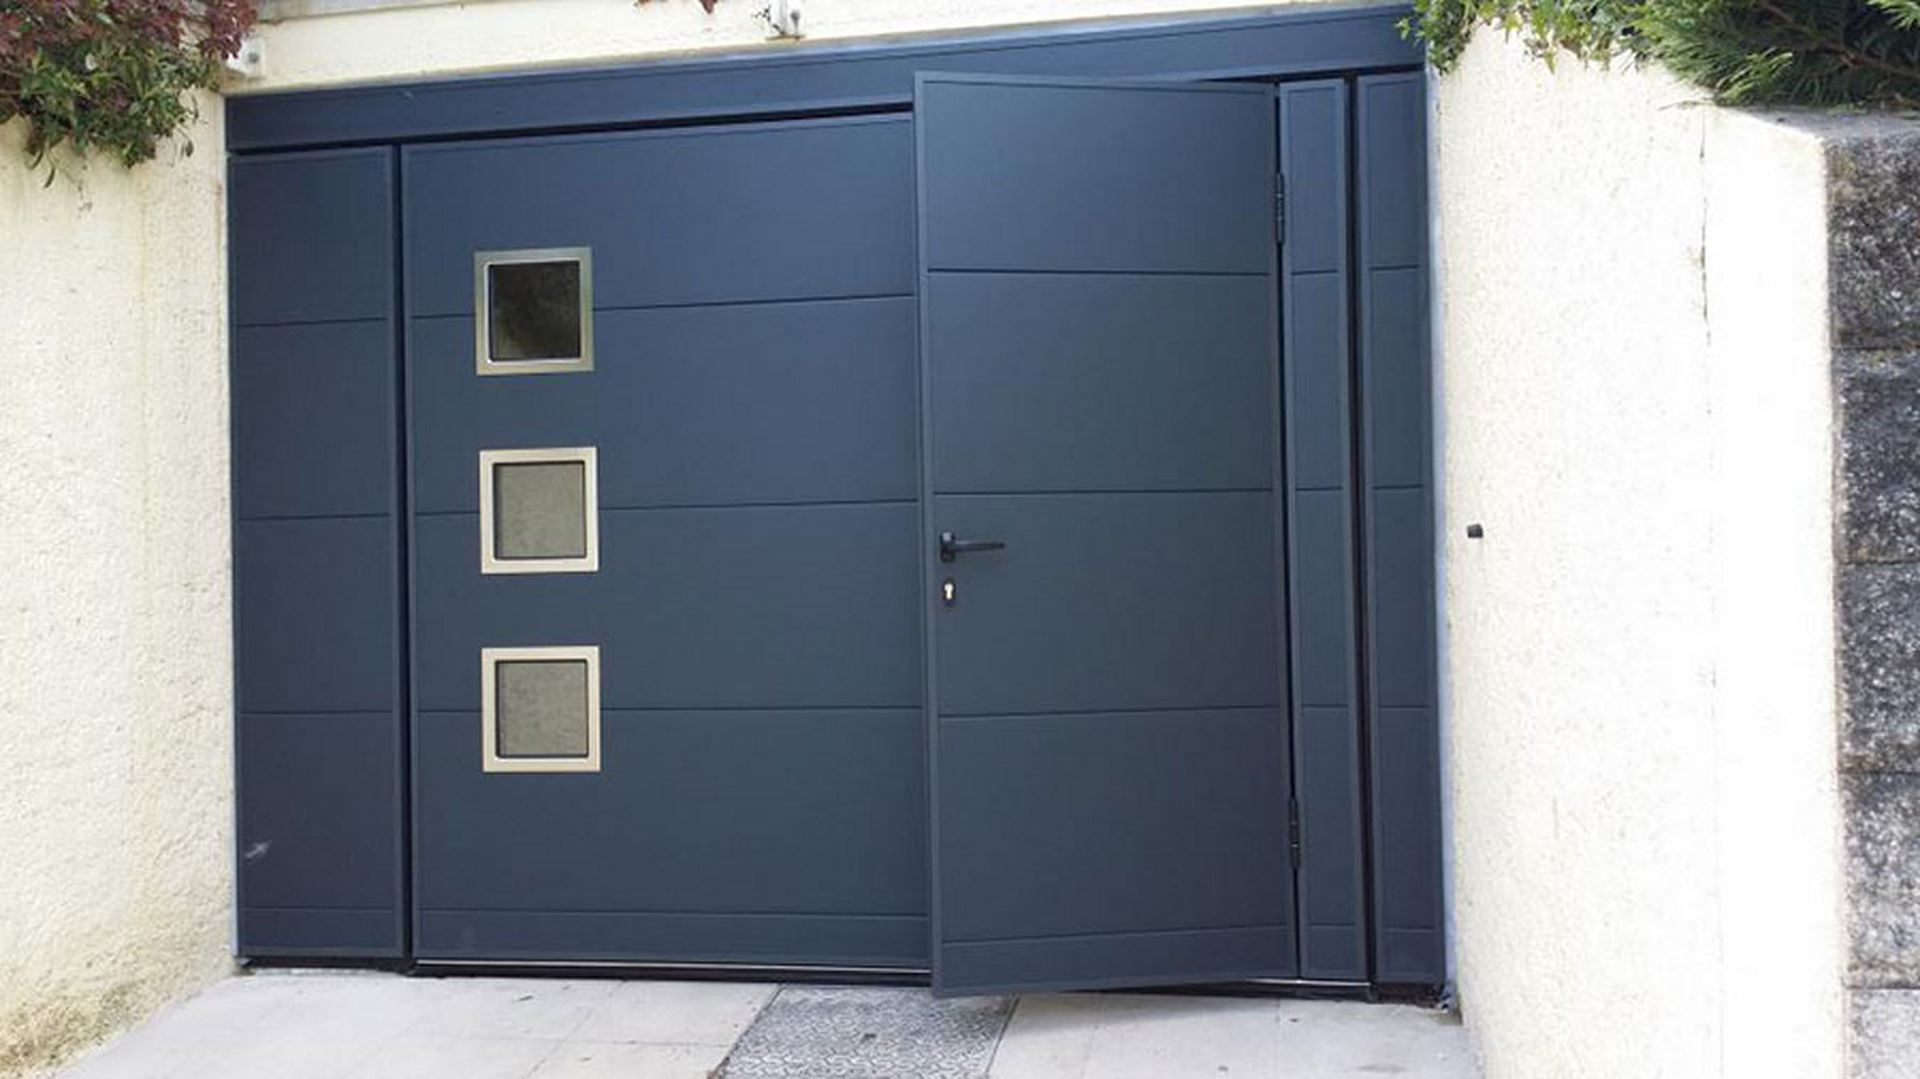 Combien co te une installation de porte de garage abc for Monter porte de garage